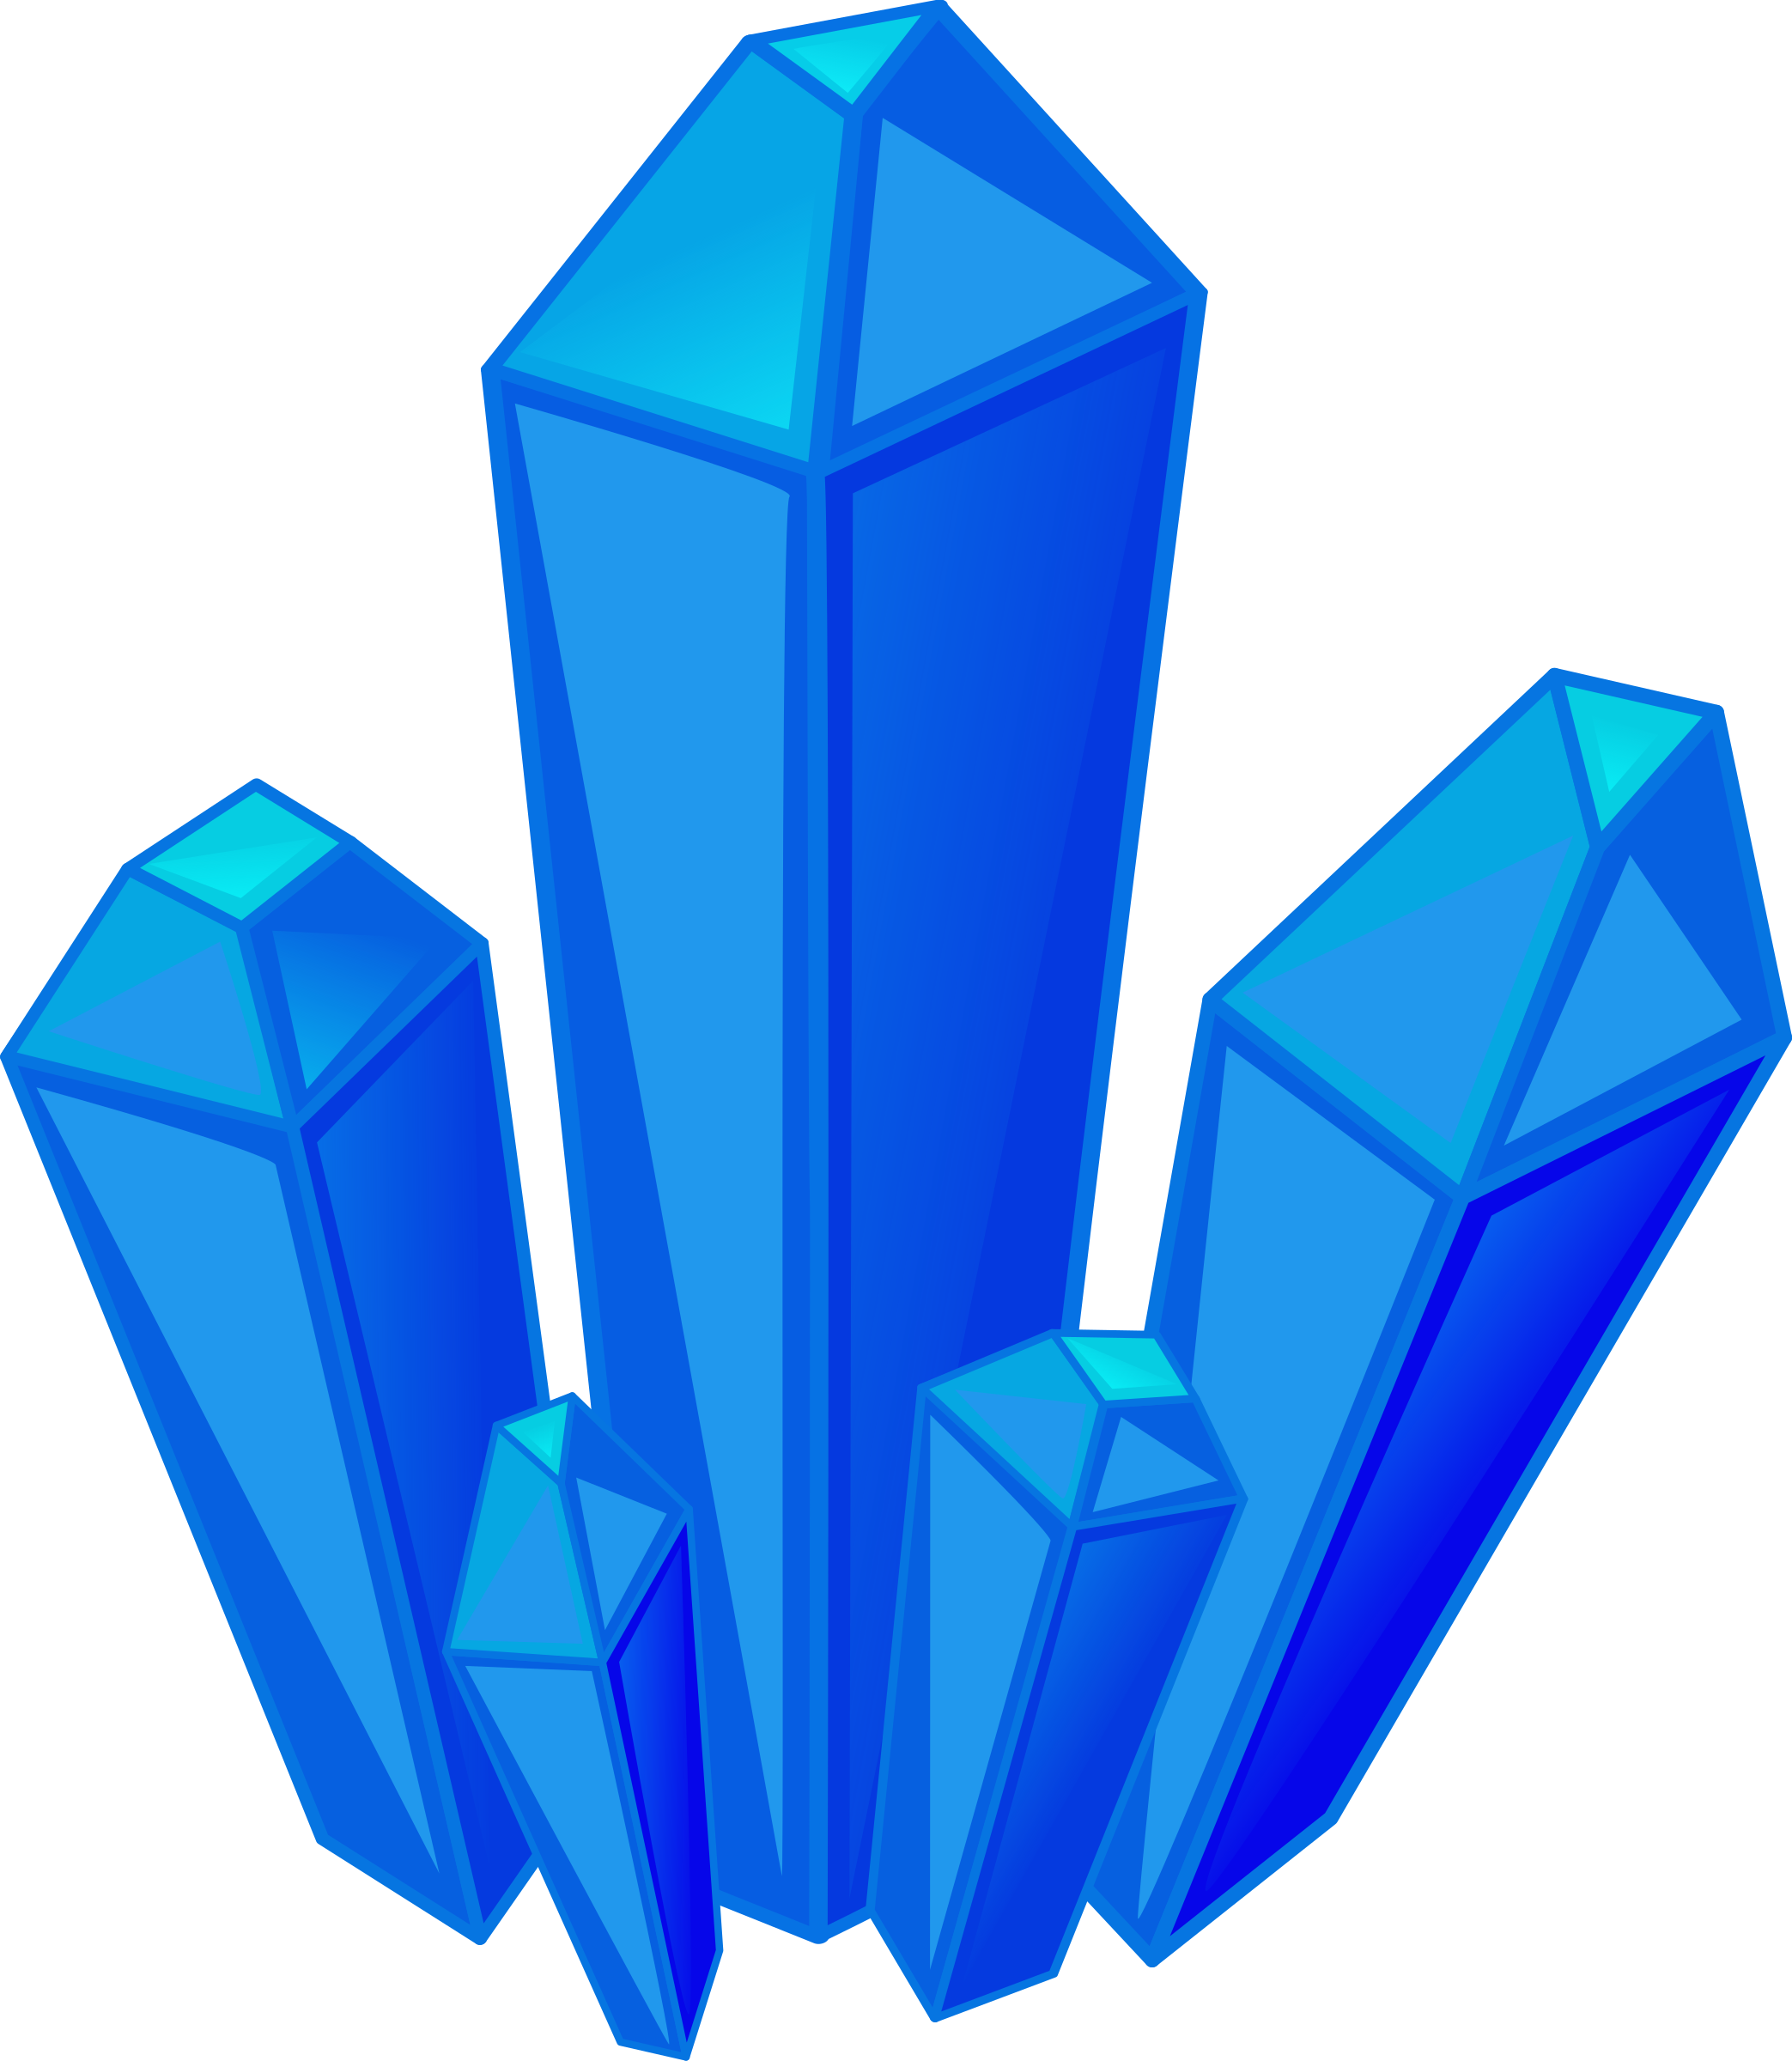 Minerals big image png. Crystal clipart mineral resource